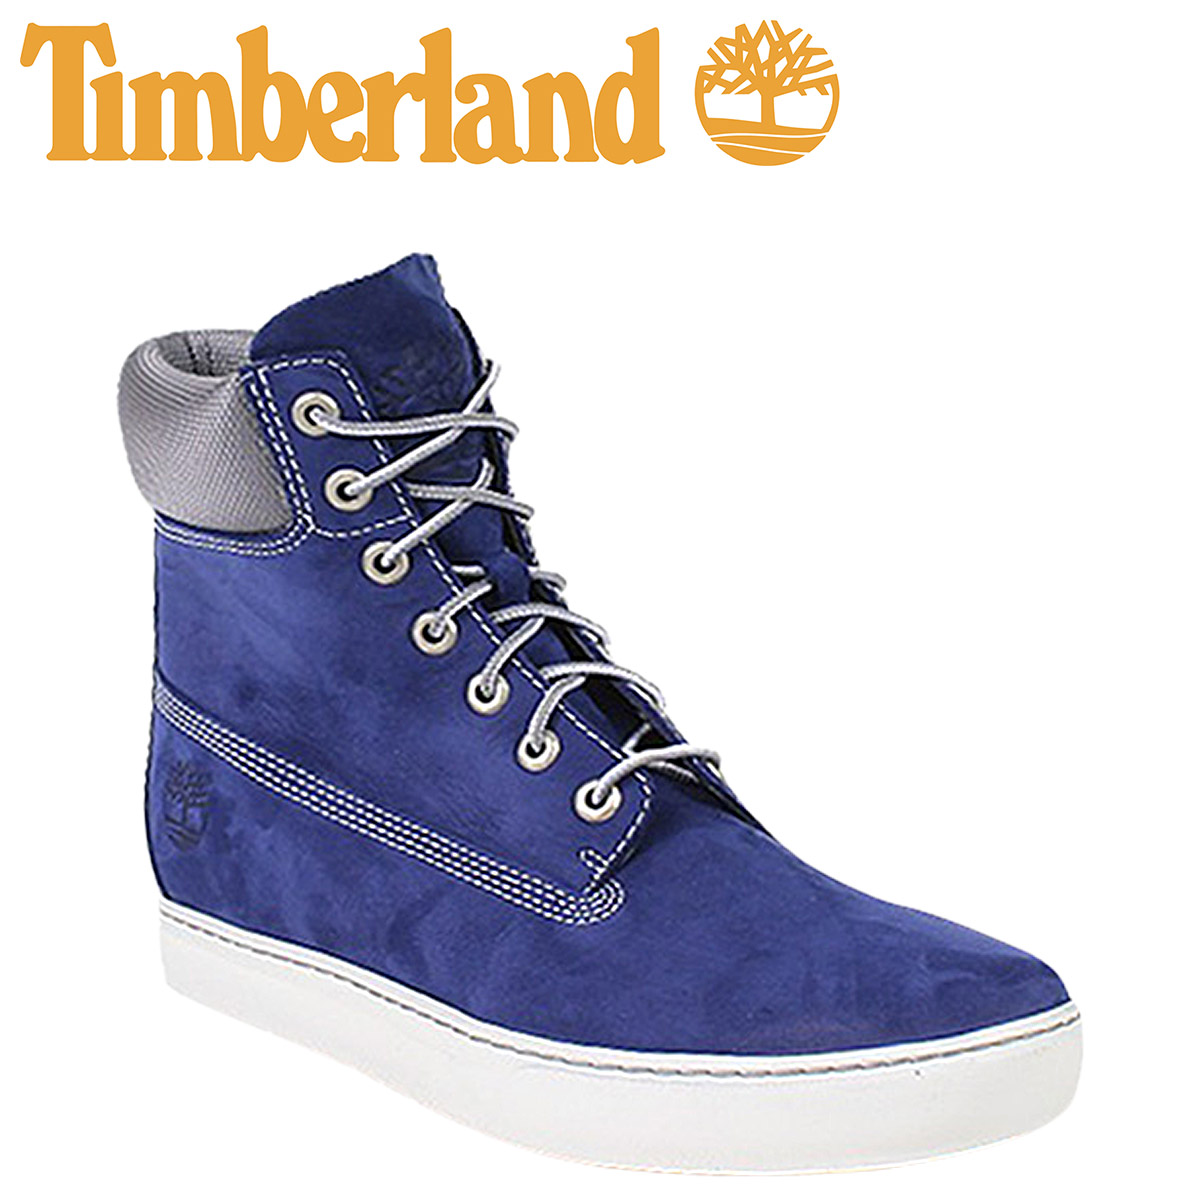 c85de44300c Timberland Timberland Newmarket 6 inches cup sole boots royal blue 6700R NM  6Inch Cupsole Boot nubuck men